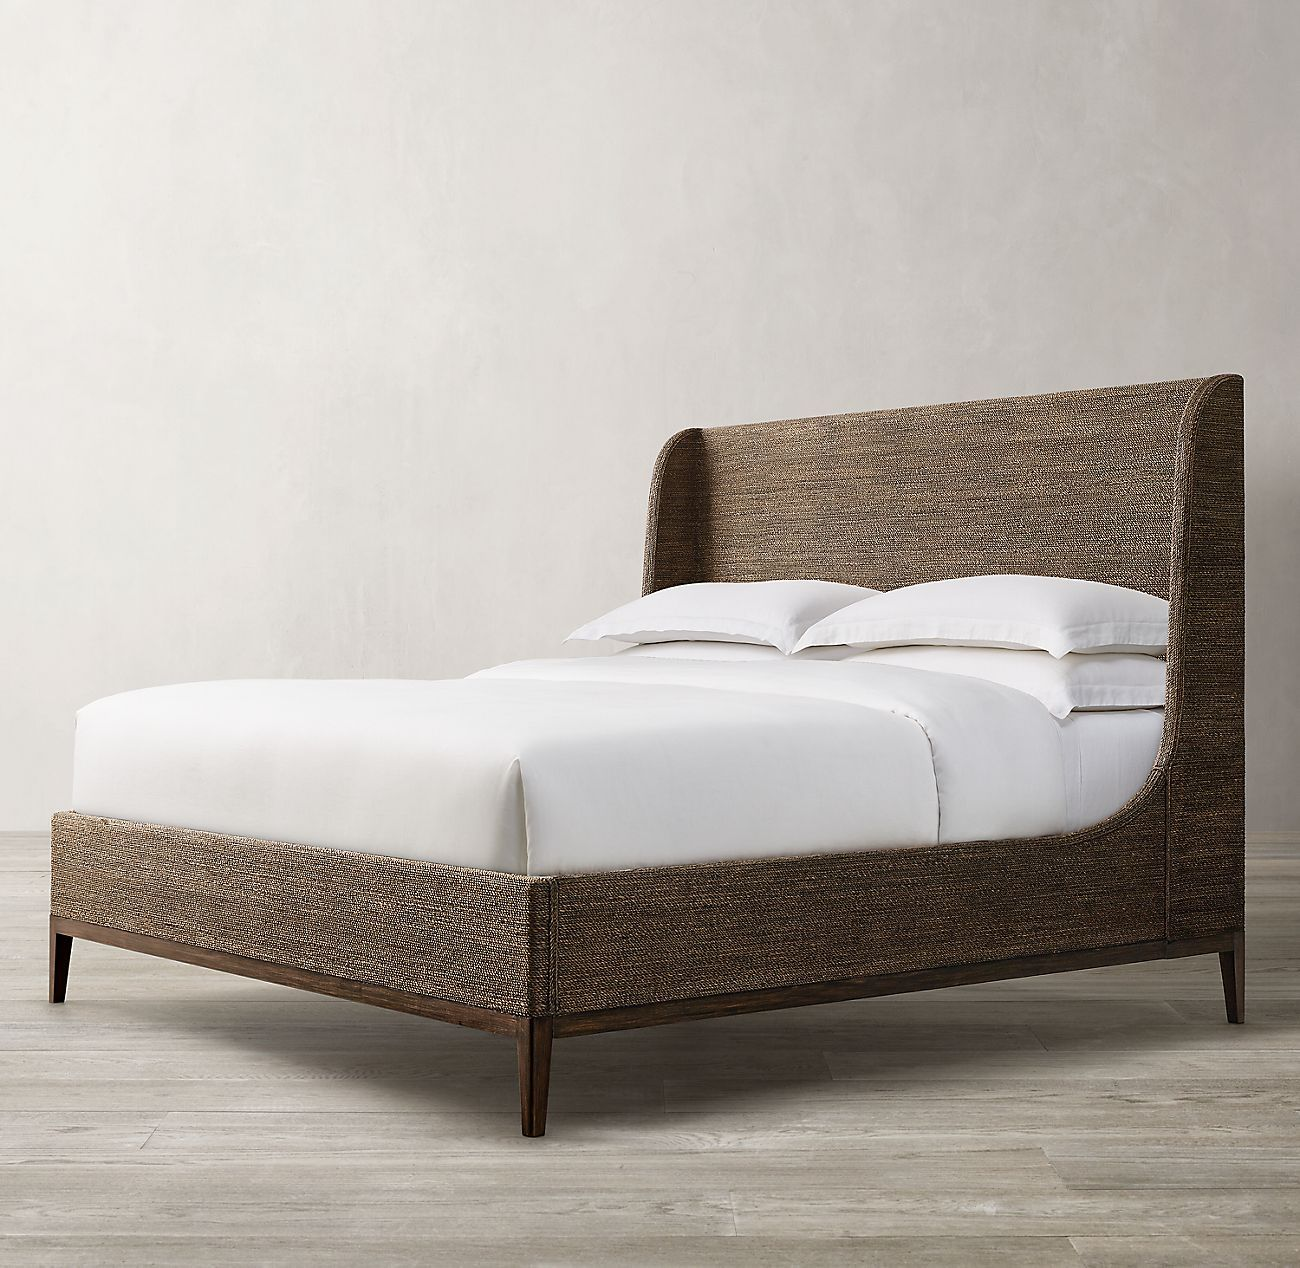 Marisol Seagrass Slope Bed Wood Beds Bed Seagrass Headboard